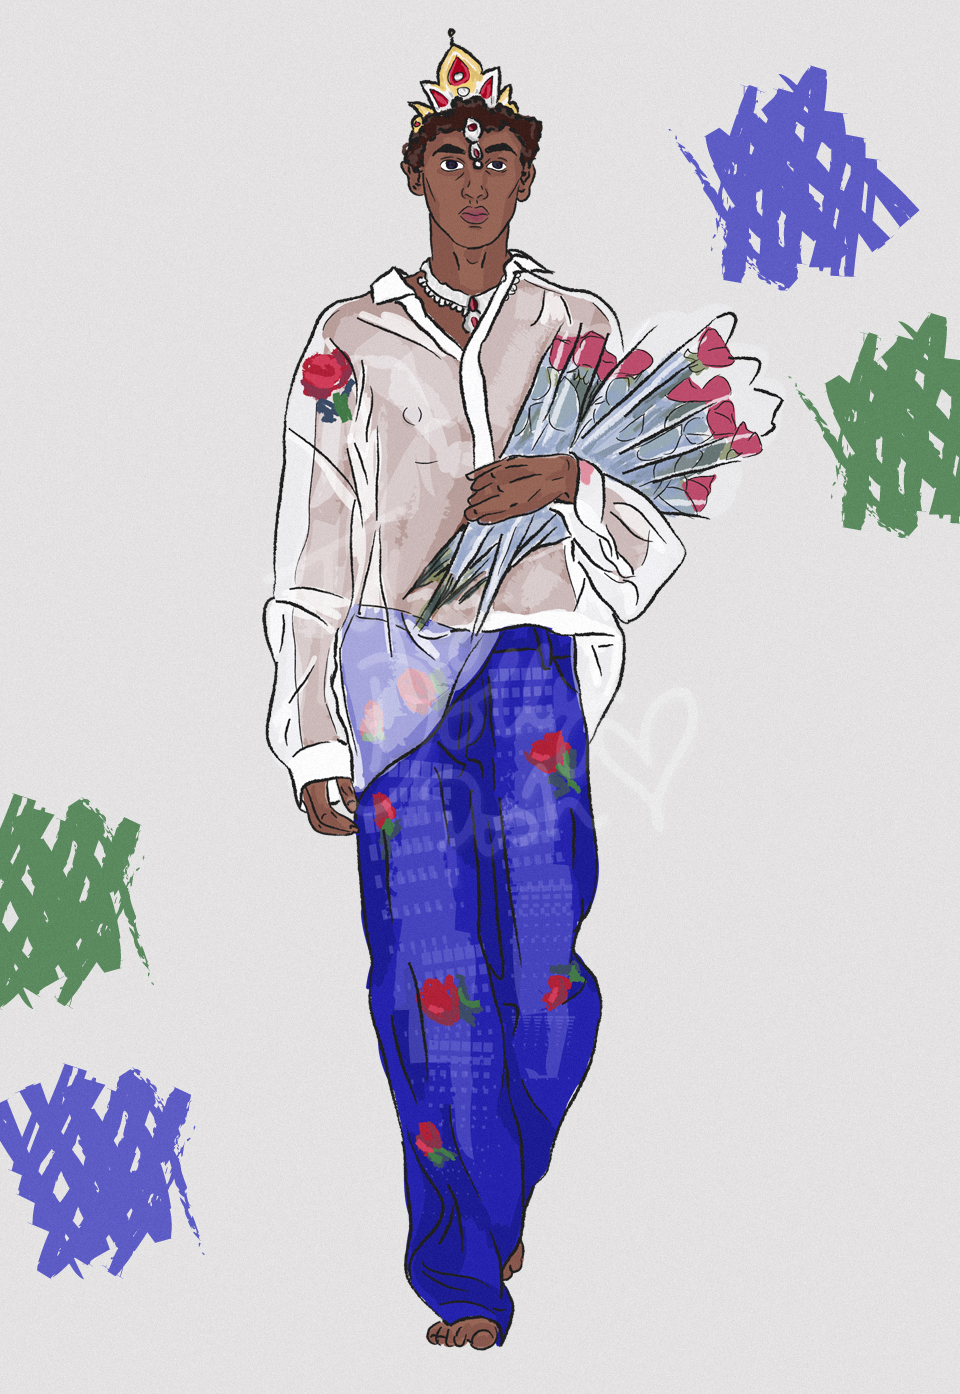 LFW Spring Summer 2017 ASHISH fashion illustrations